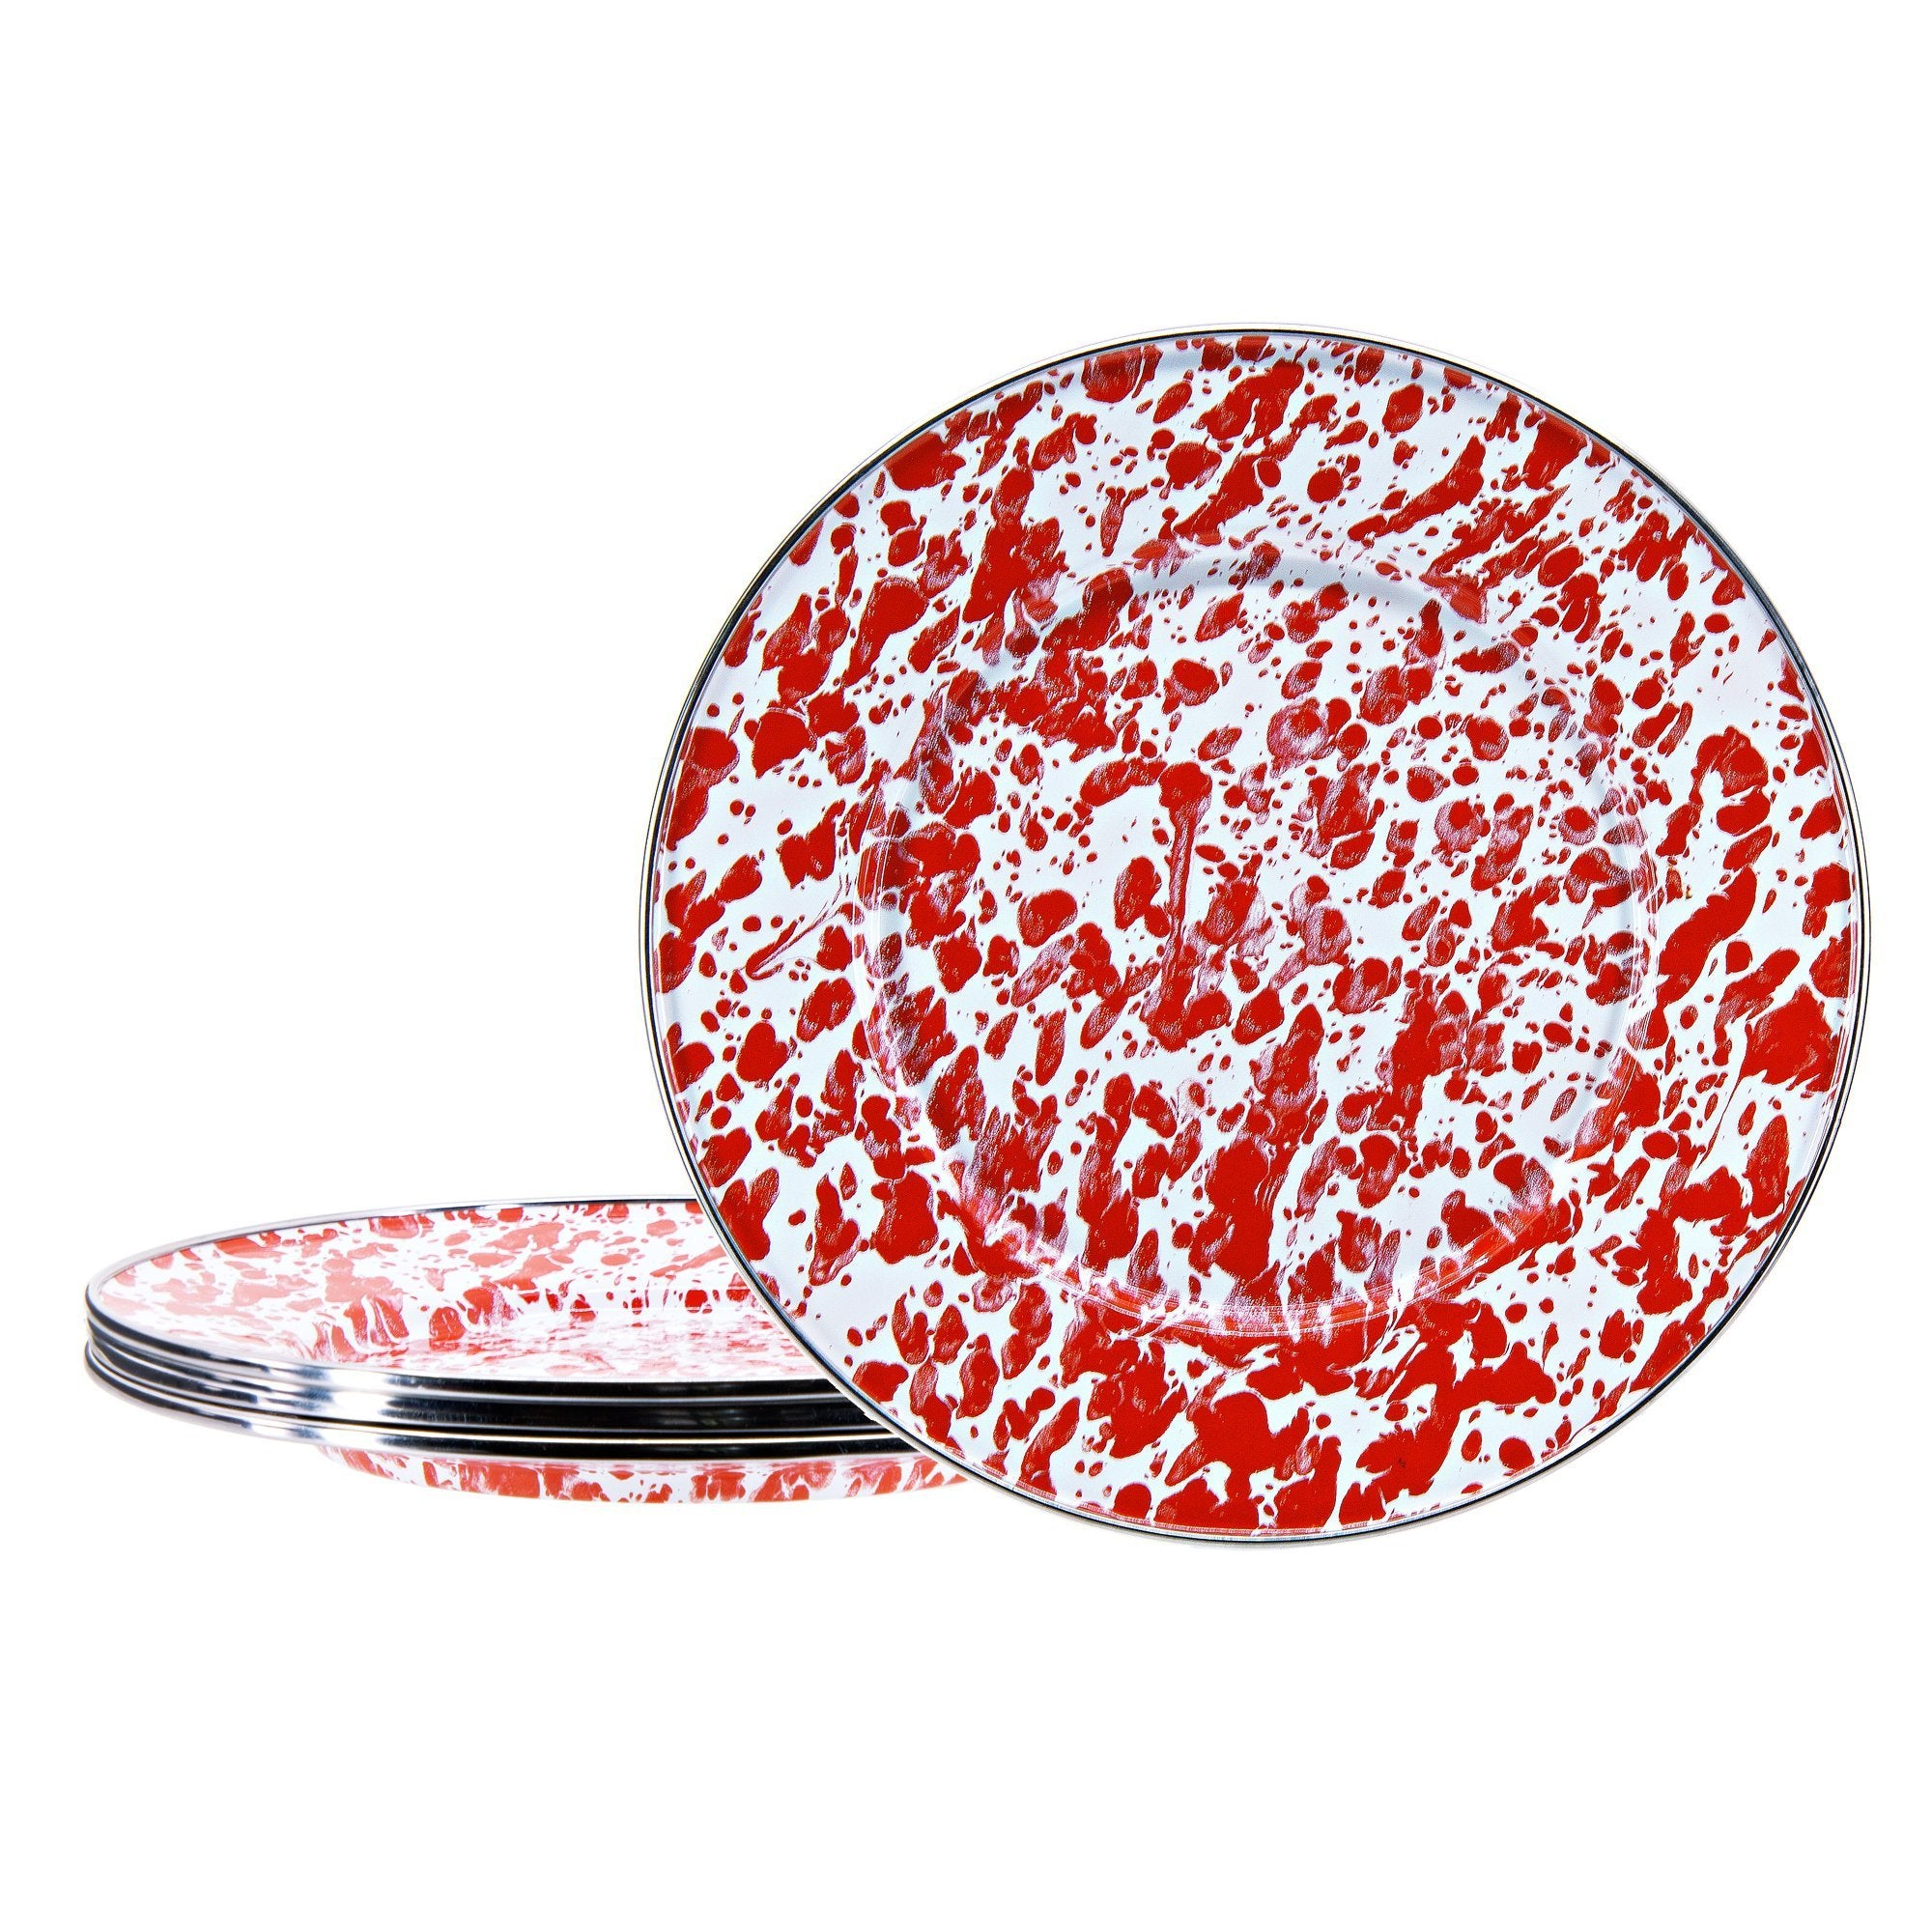 RD11S4 - Set of 4 - Red Swirl - Sandwich Plates